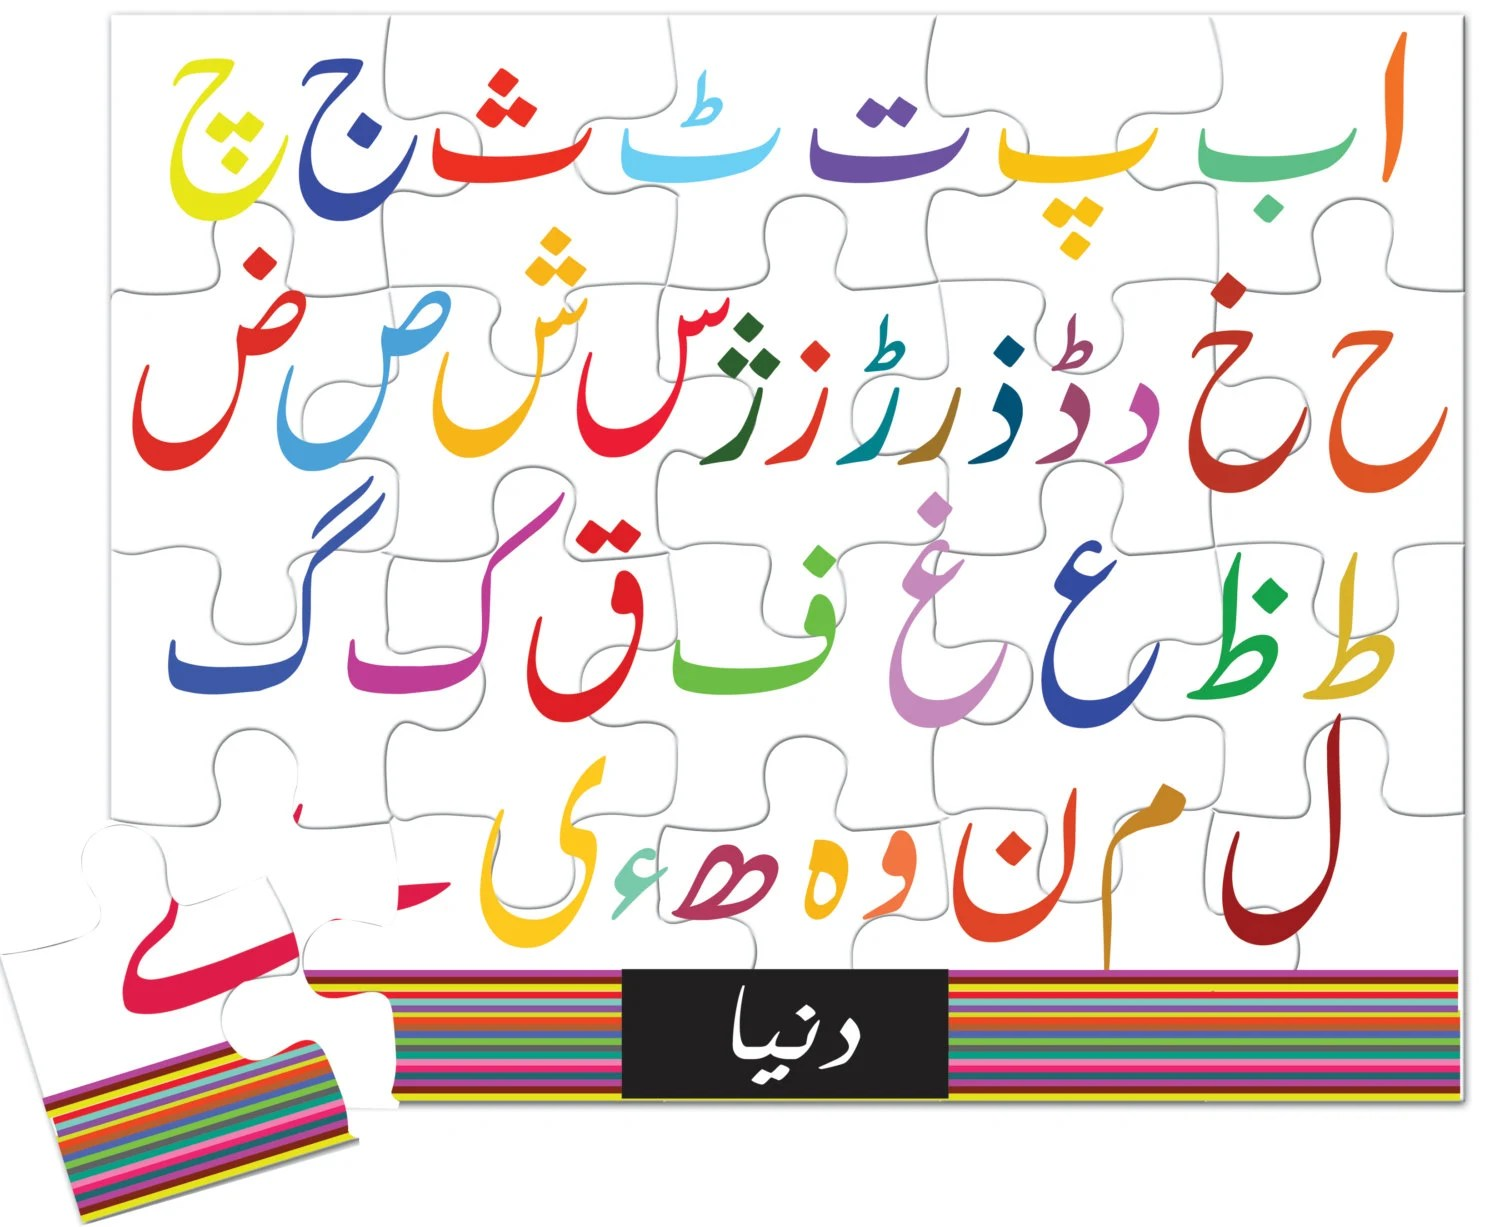 Personalized Urdu Alphabet Puzzle By Golreezan On Etsy